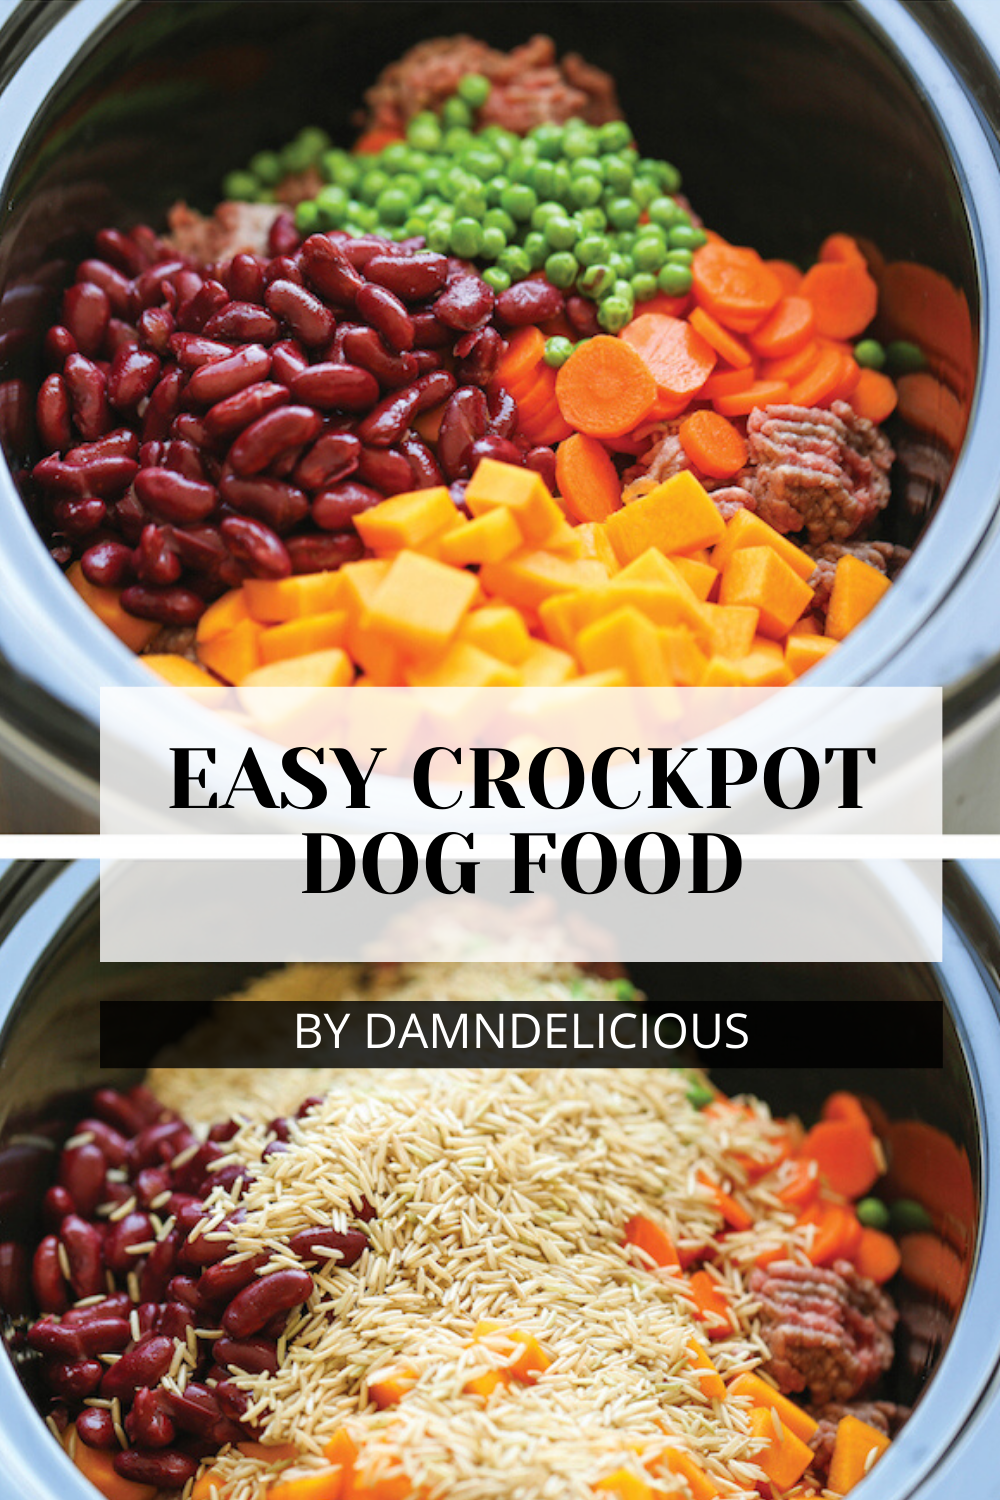 Homemade Crockpot Dog Food In 2020 Dog Food Recipes Crockpot Healthy Dog Food Recipes Dog Food Recipes